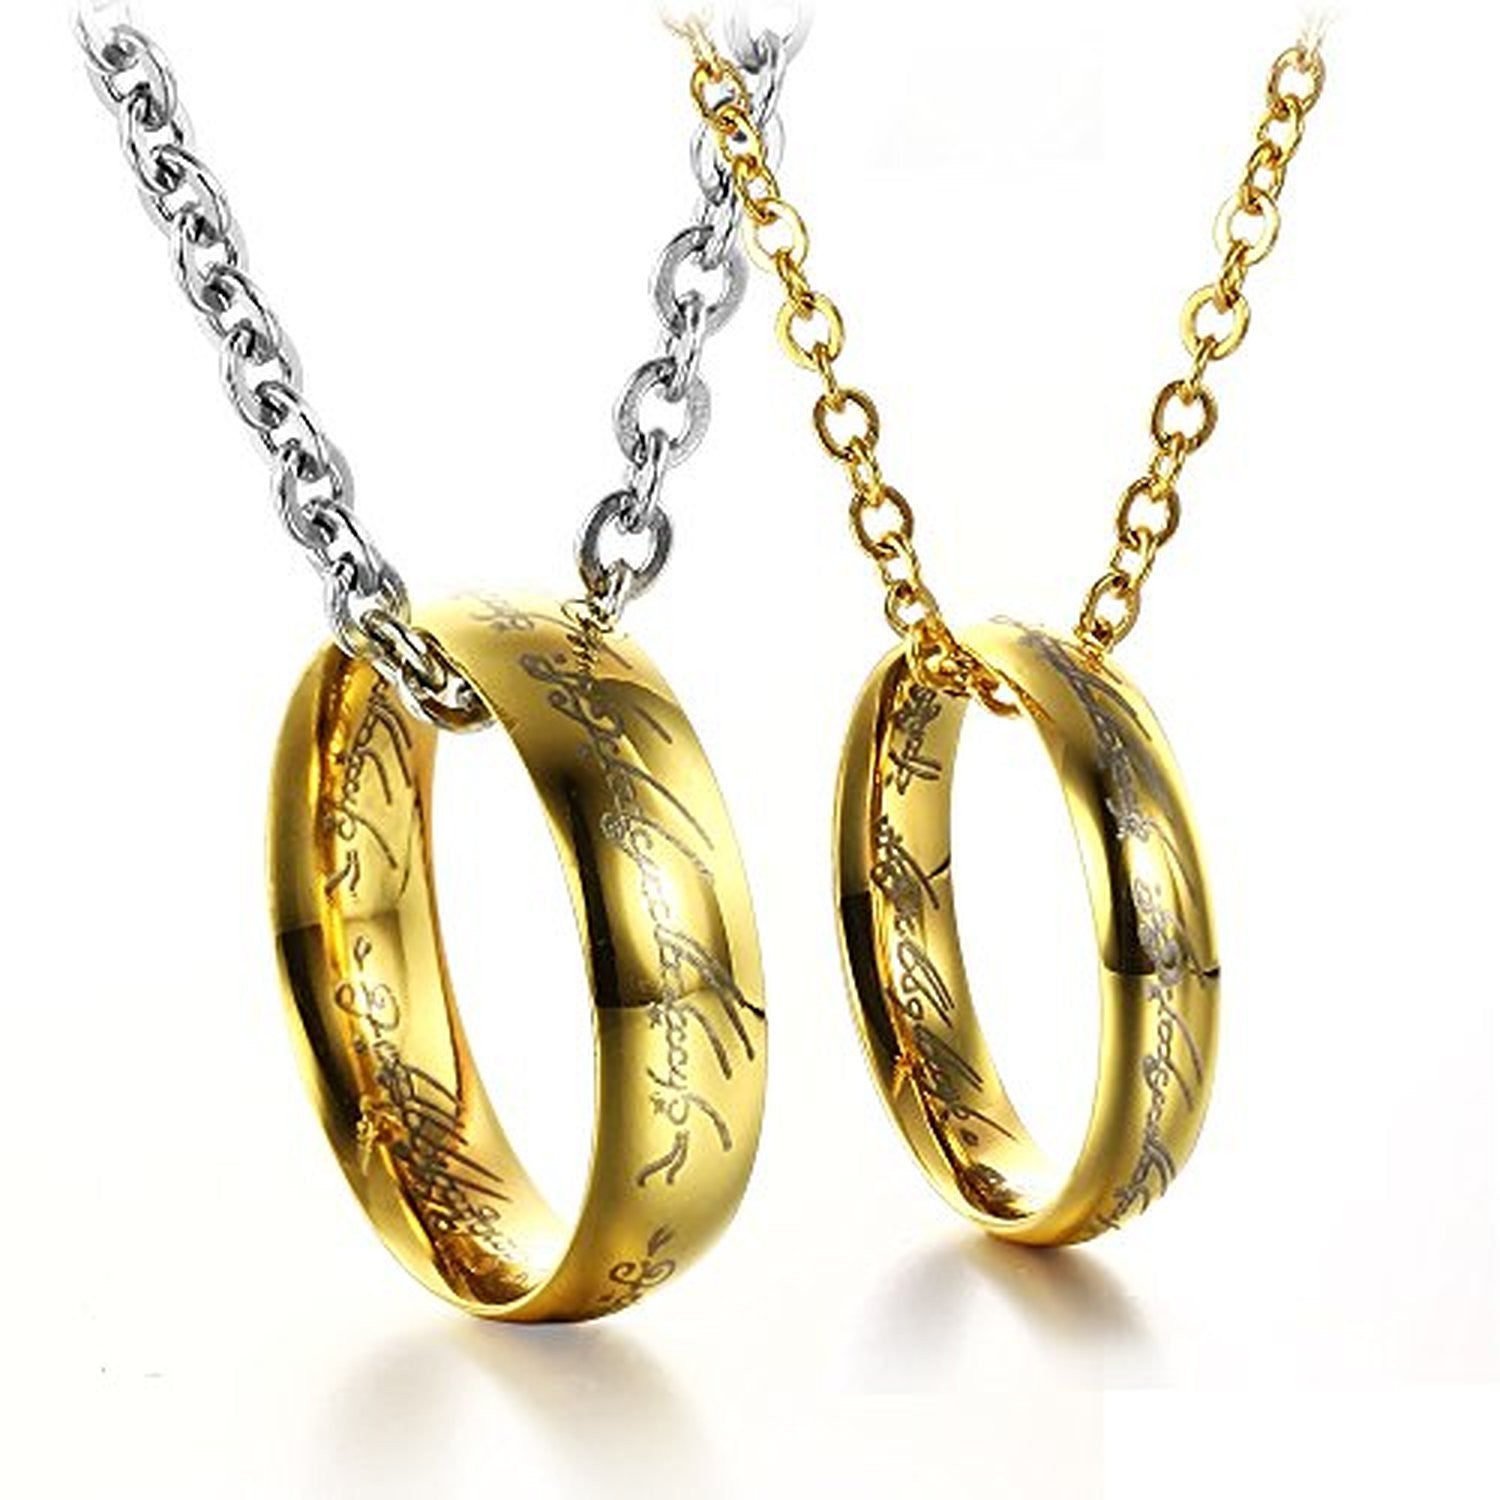 Golden lord ring stainless steel pendant love couples necklaces azwomens stainless pendant couples necklaceb00rz5kuxu aloadofball Images